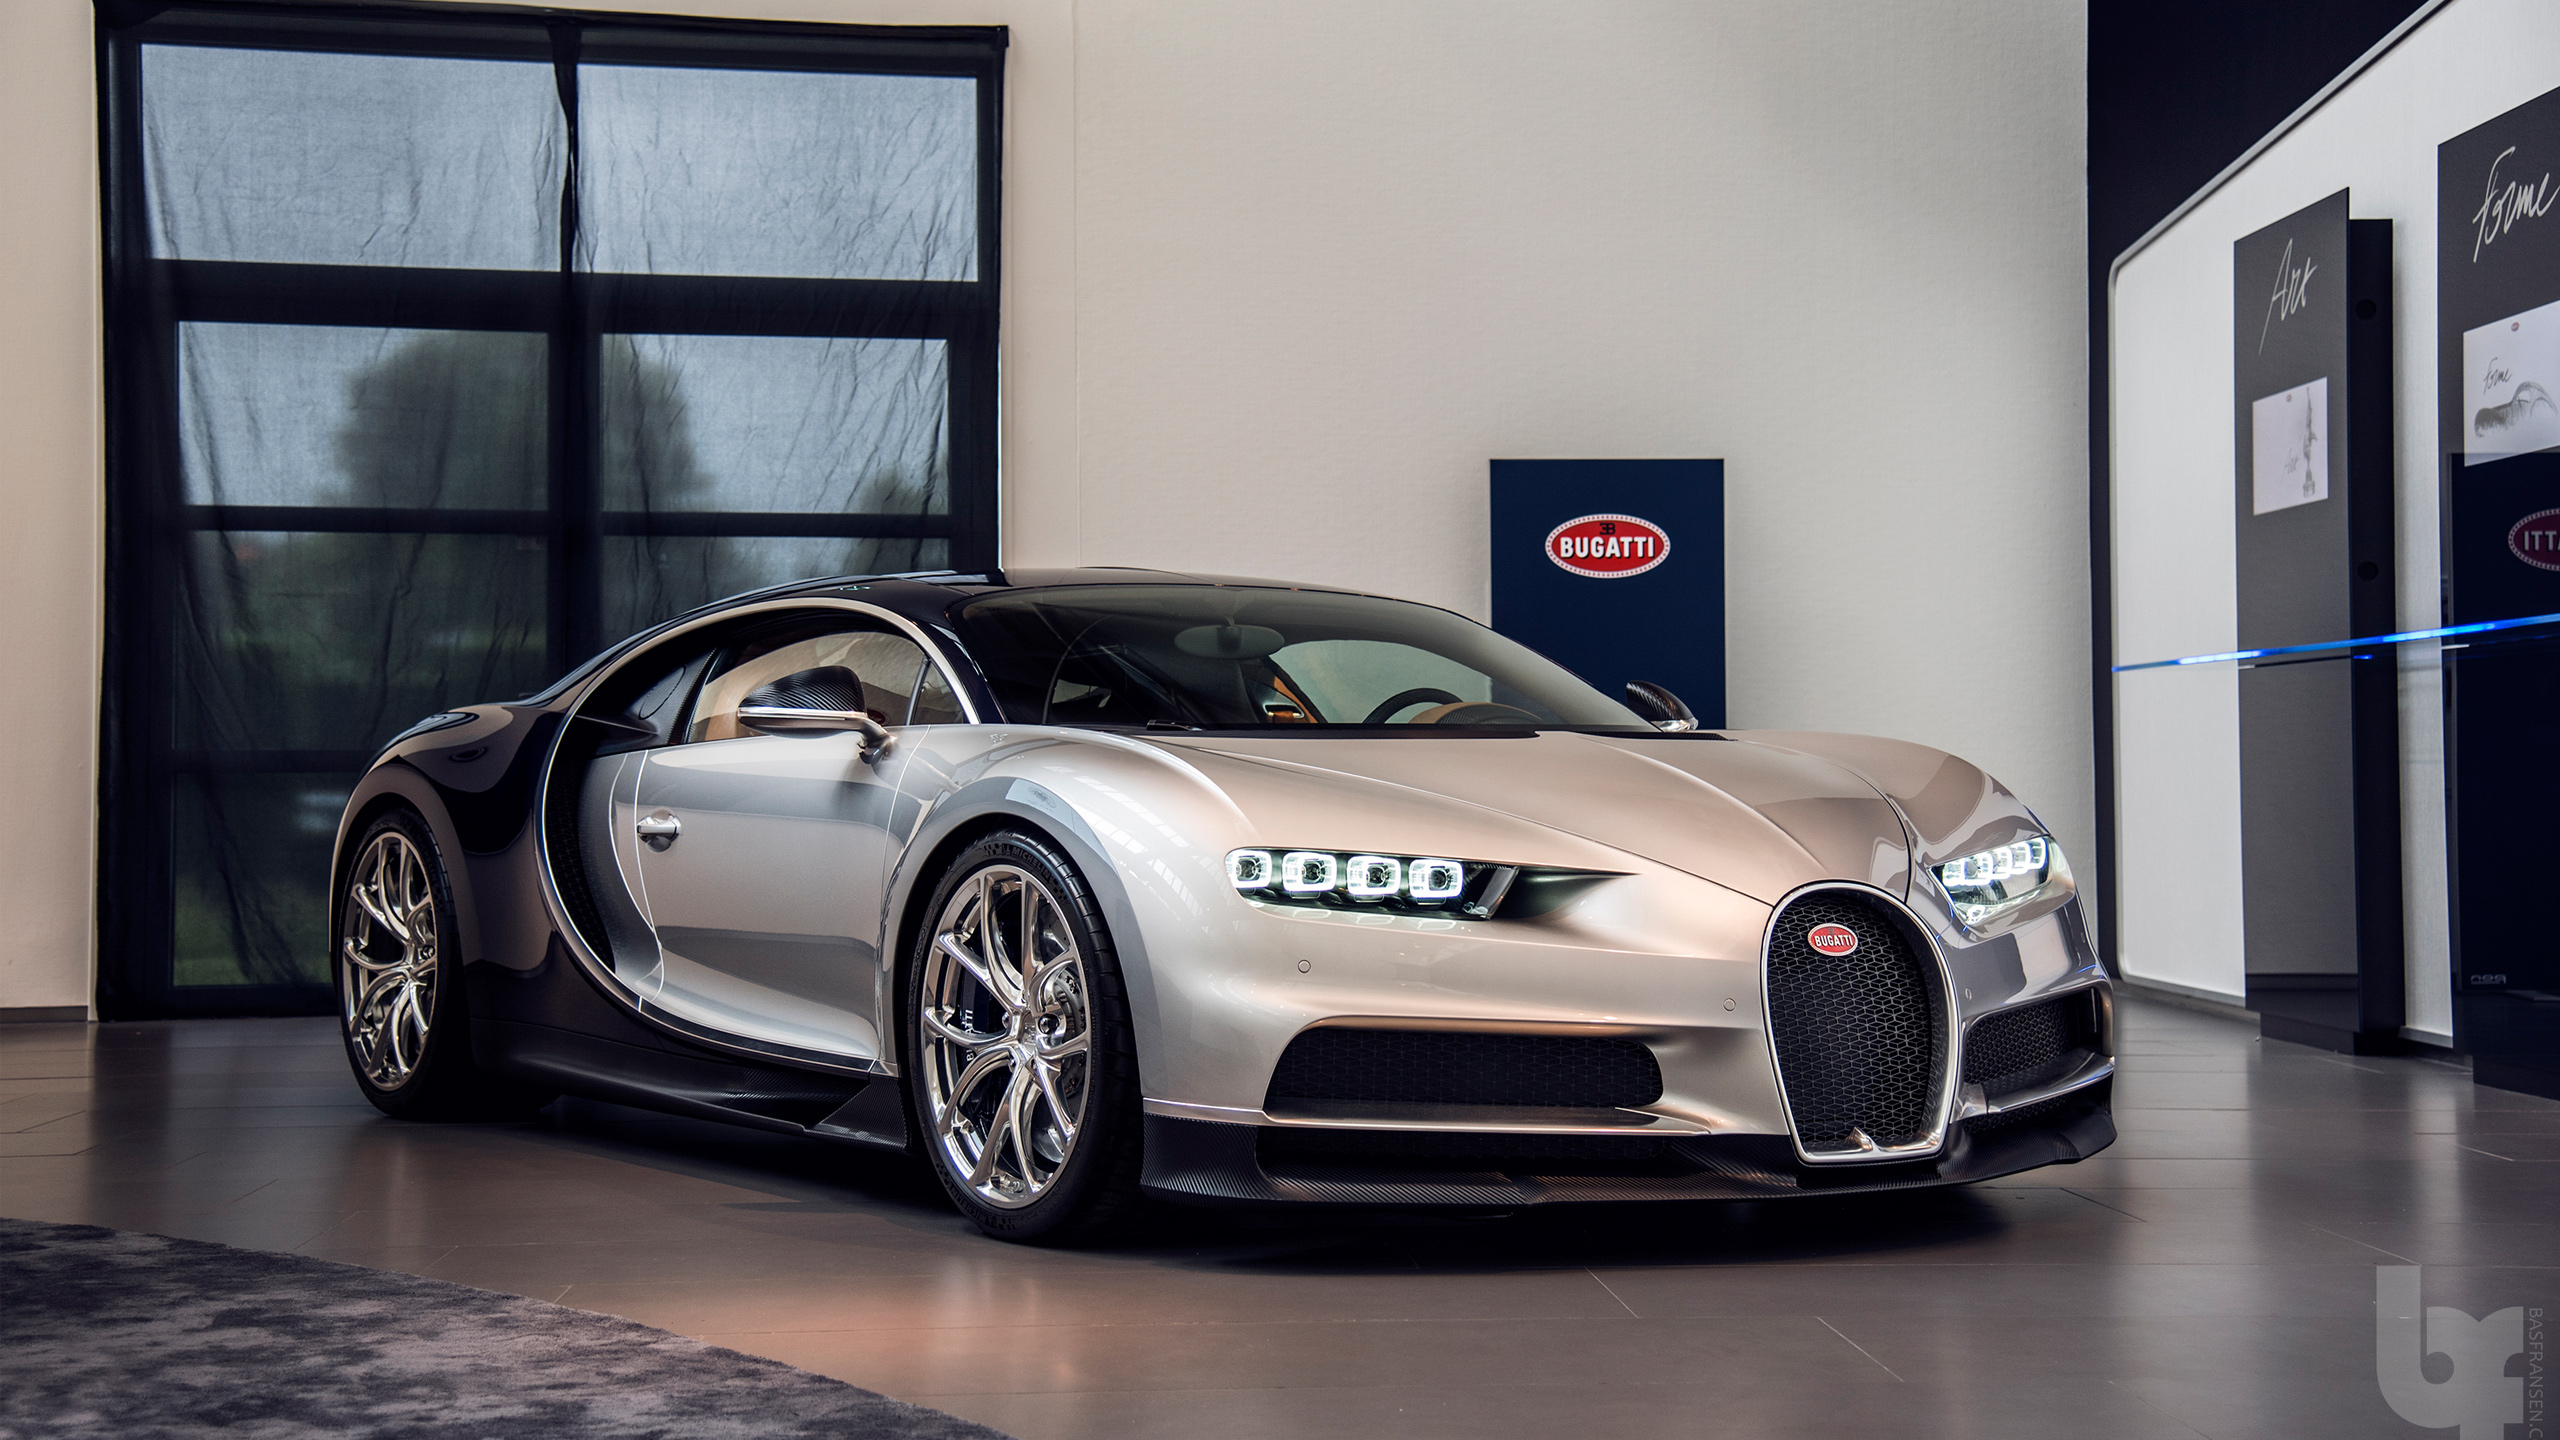 Bugatti Chiron Most Expensive Car Wallpaper Hd Car Wallpapers Id